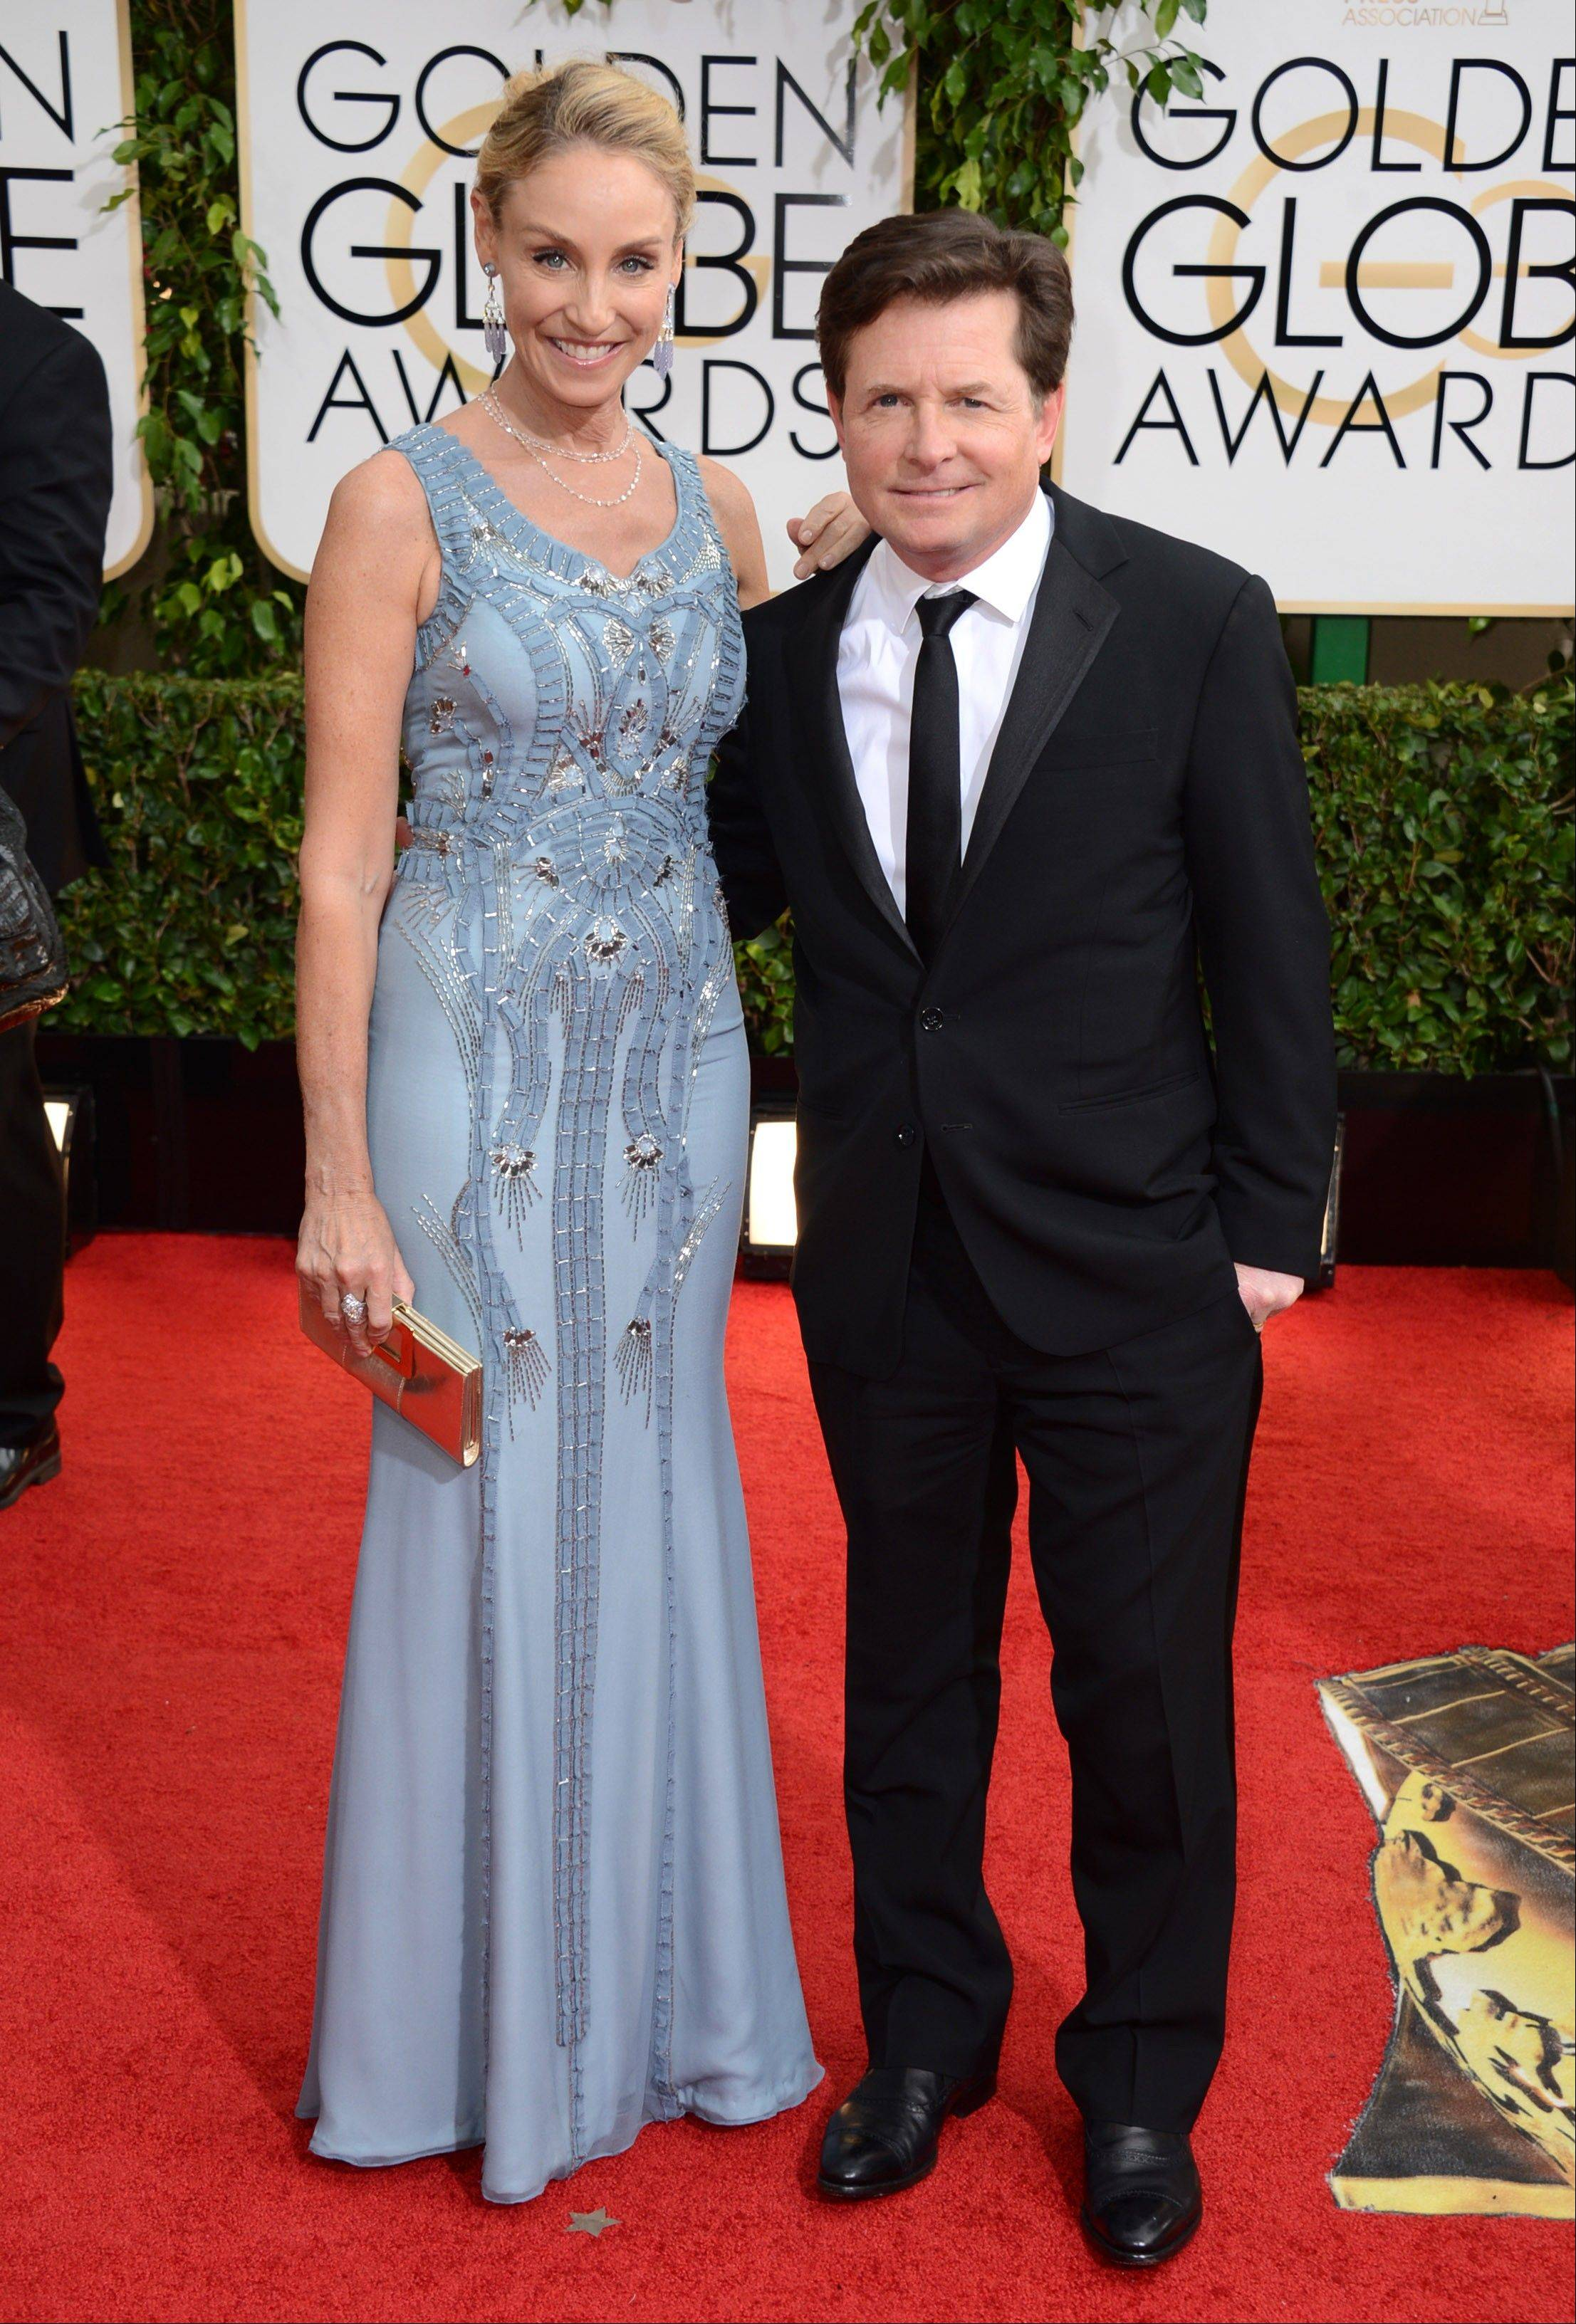 Tracy Pollan and Michael J. Fox arrive at the 71st annual Golden Globe Awards.